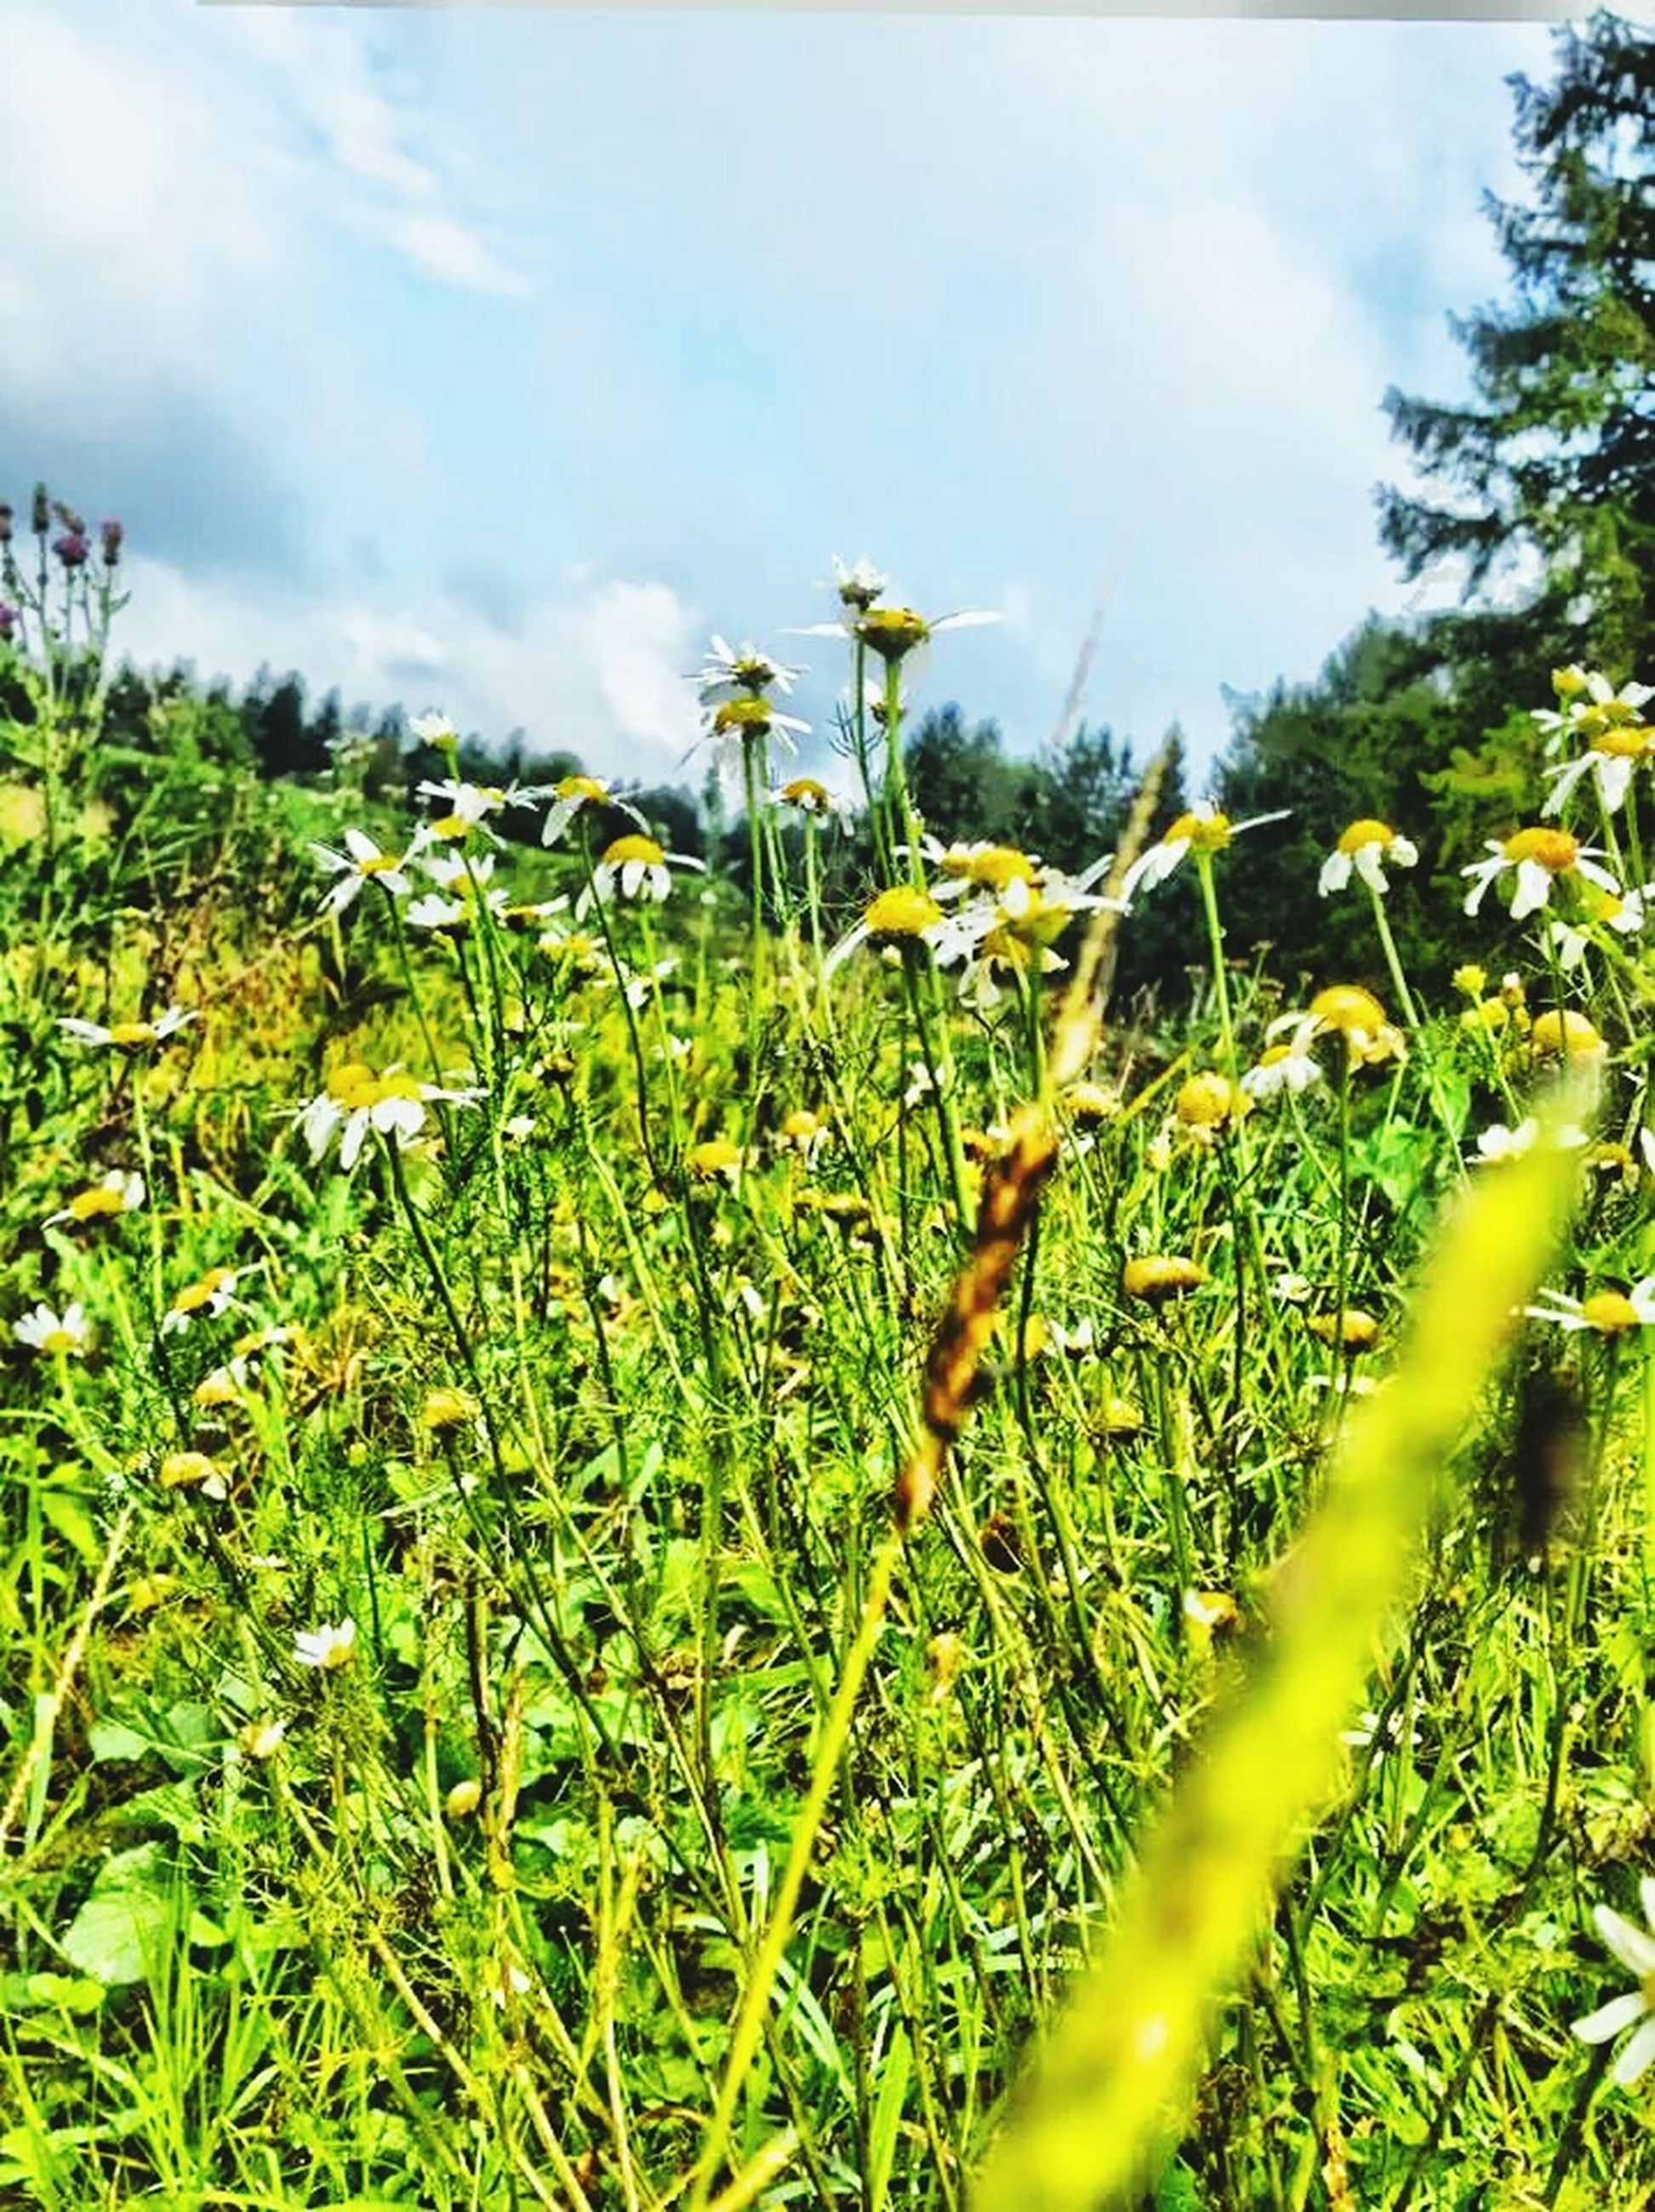 flower, growth, field, freshness, sky, plant, beauty in nature, nature, fragility, grass, stem, blooming, green color, yellow, growing, cloud - sky, wildflower, tranquility, in bloom, day